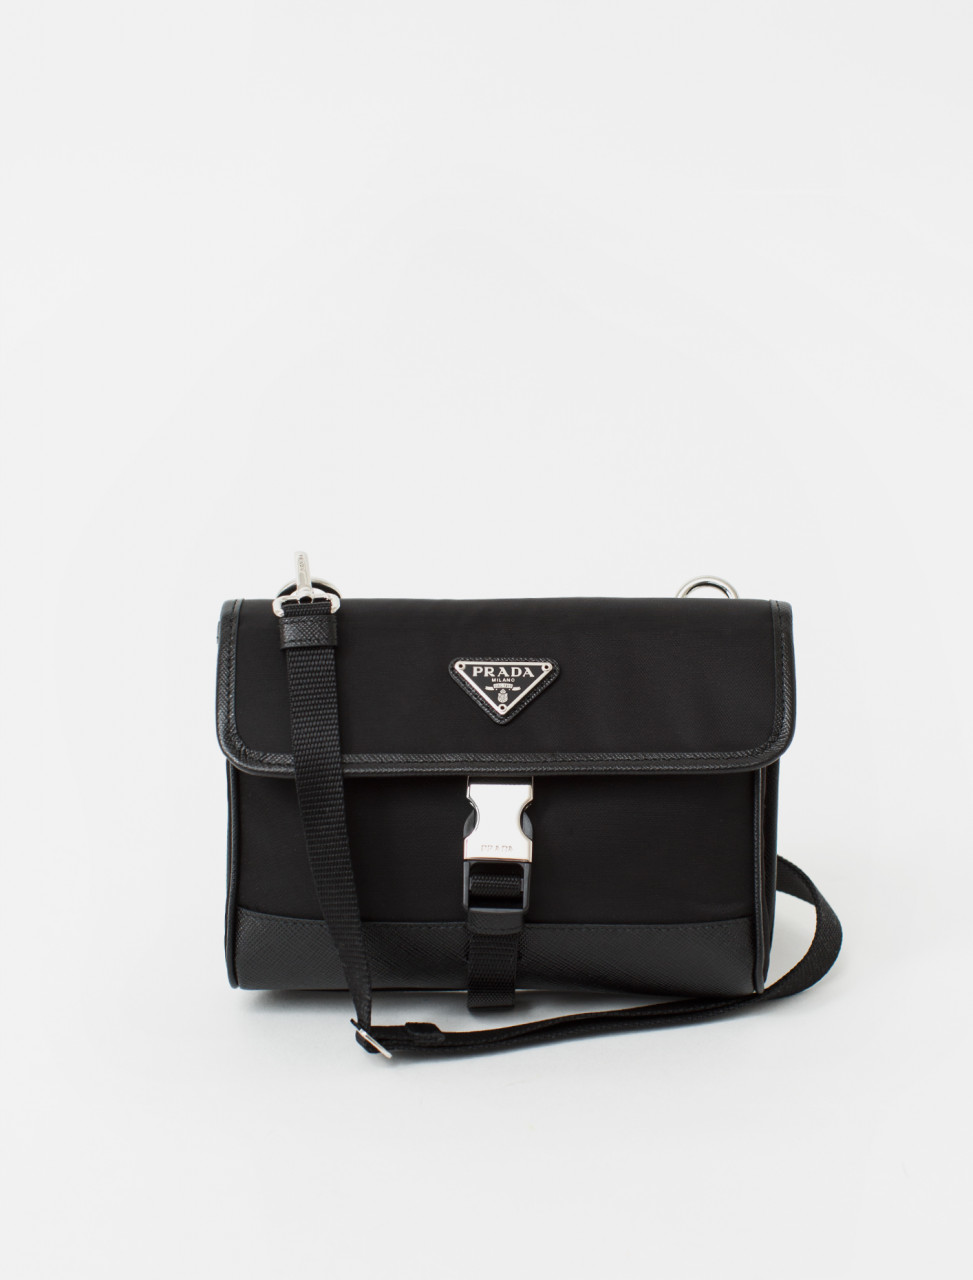 Fabric Bag with Leather Trim in Black